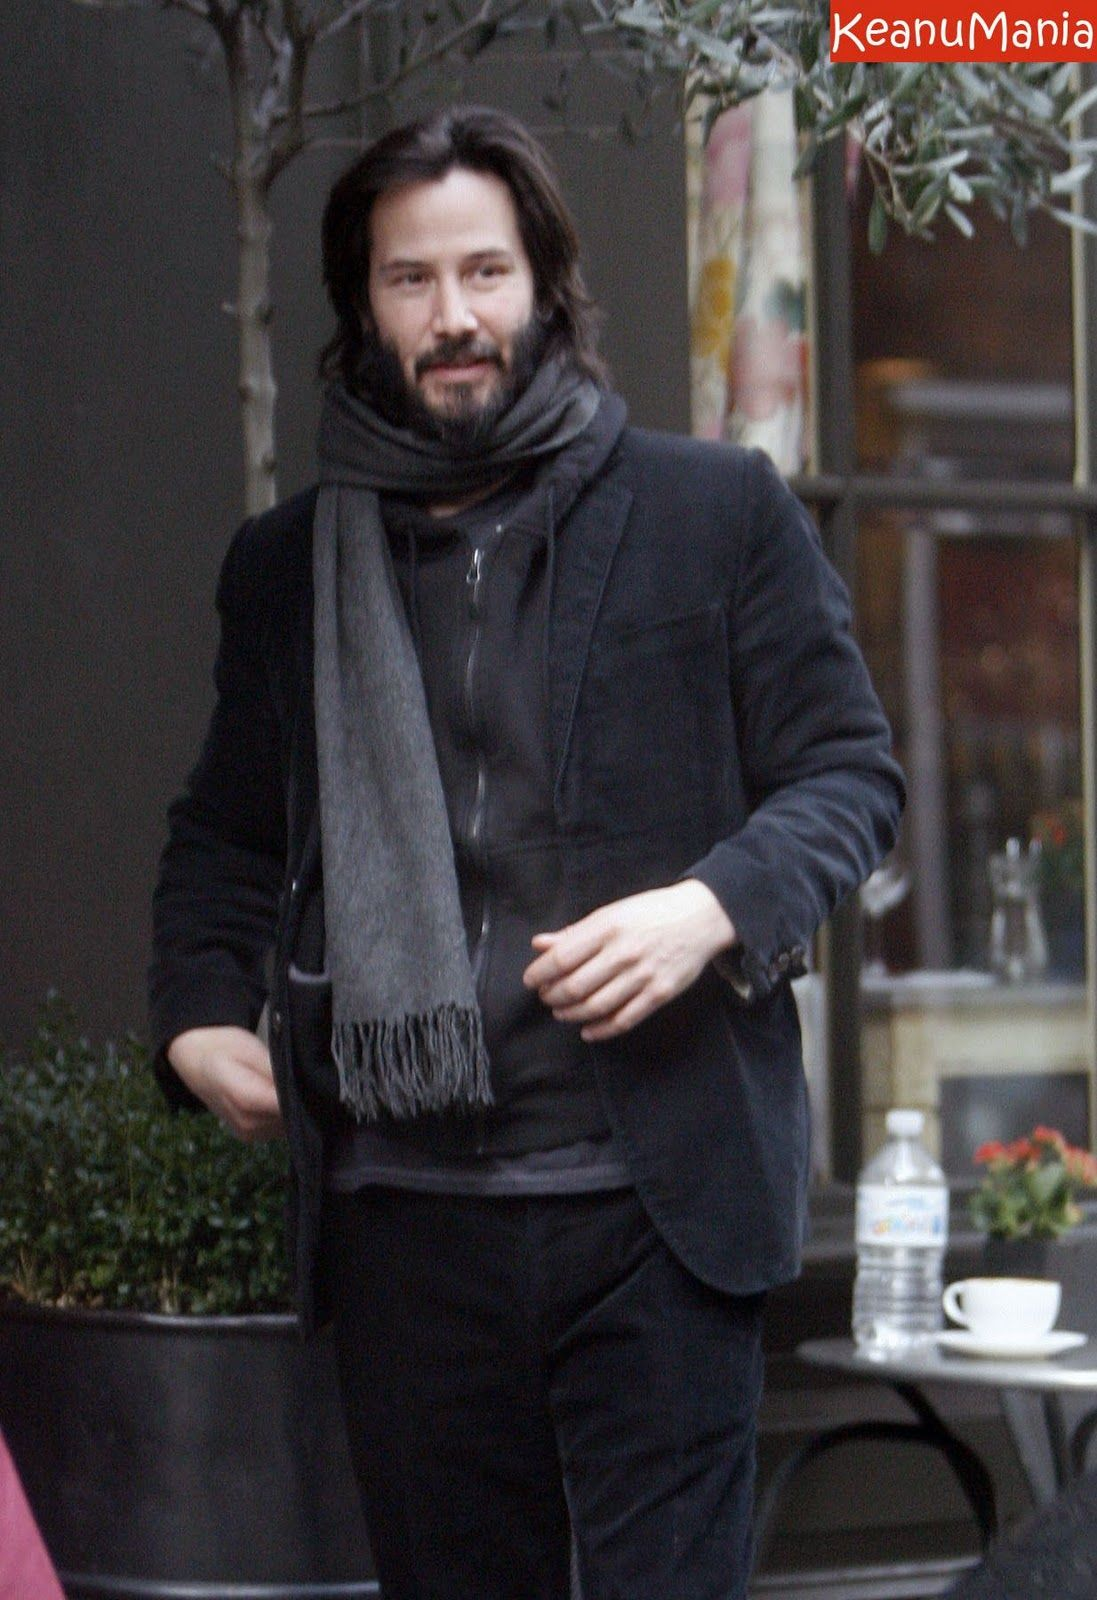 Keanu That Ring Finger Looks So Bare Without Me Get That Thing Over Here Will Ya Bring The Rest Of You Too Billy Wants A Little Sister Btw Topic Of